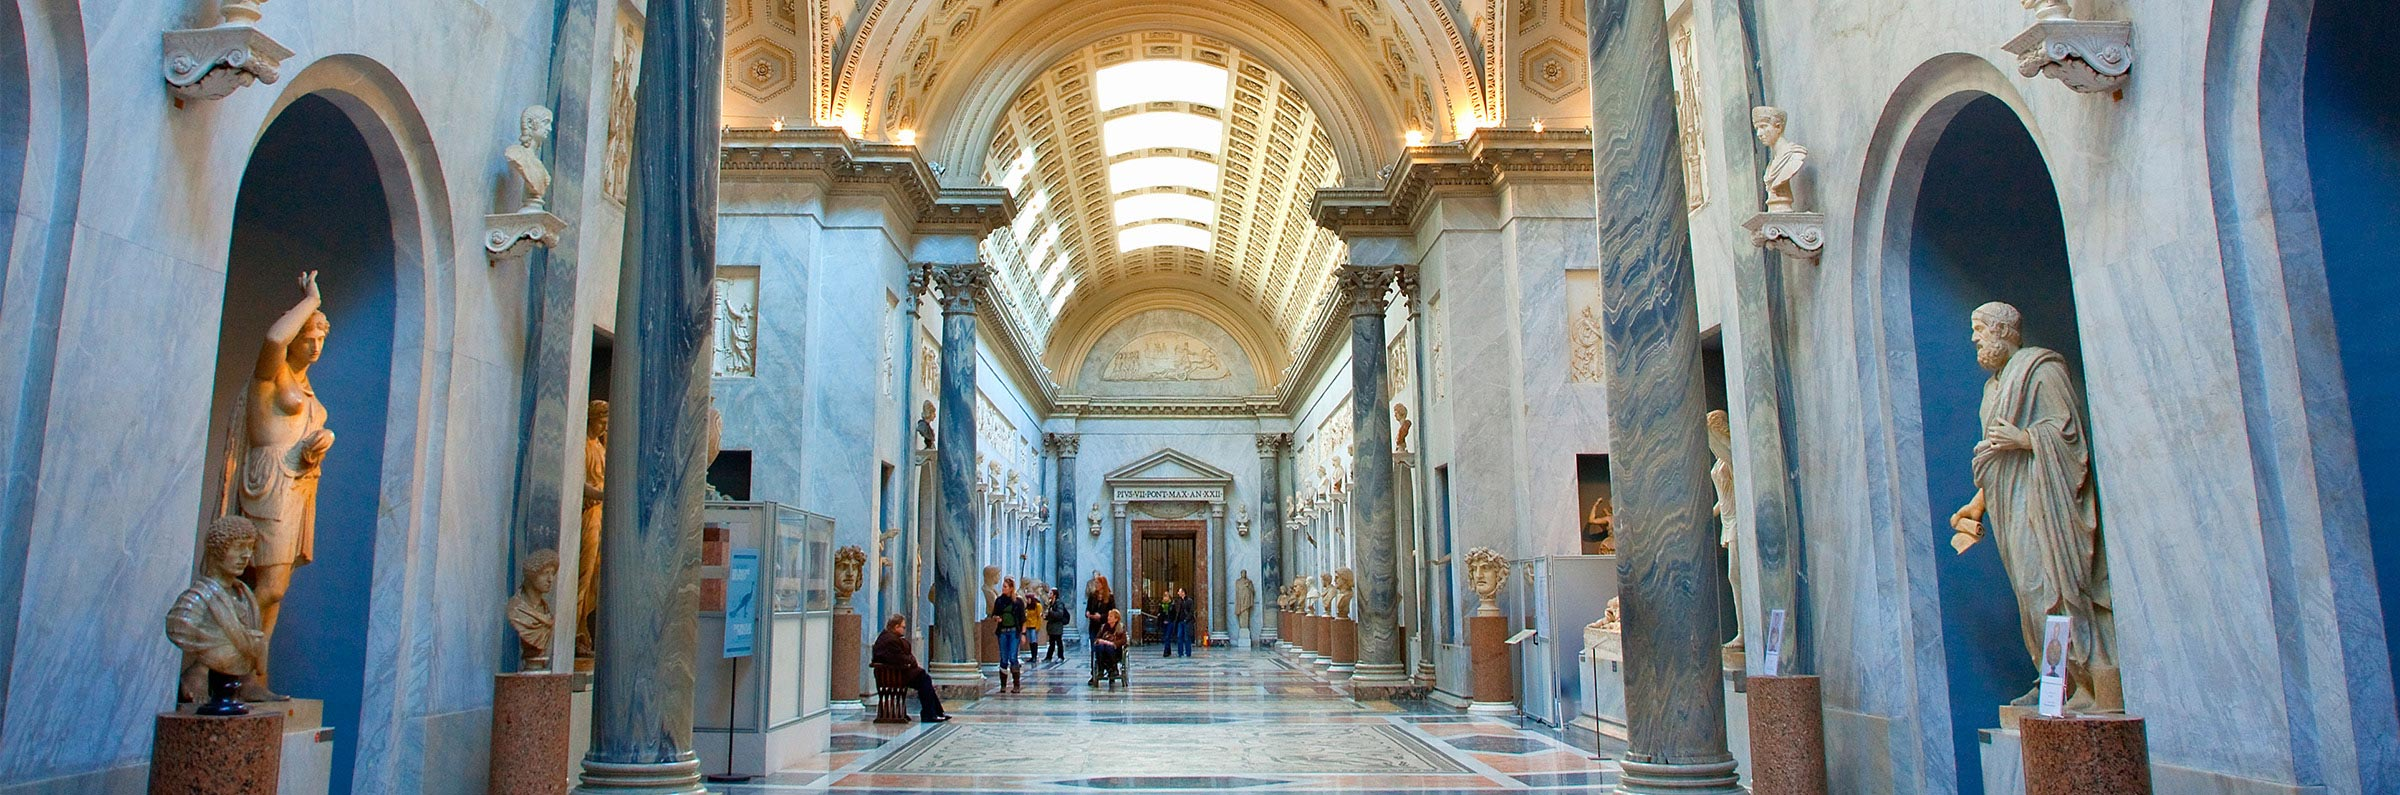 Art and culture in Rome